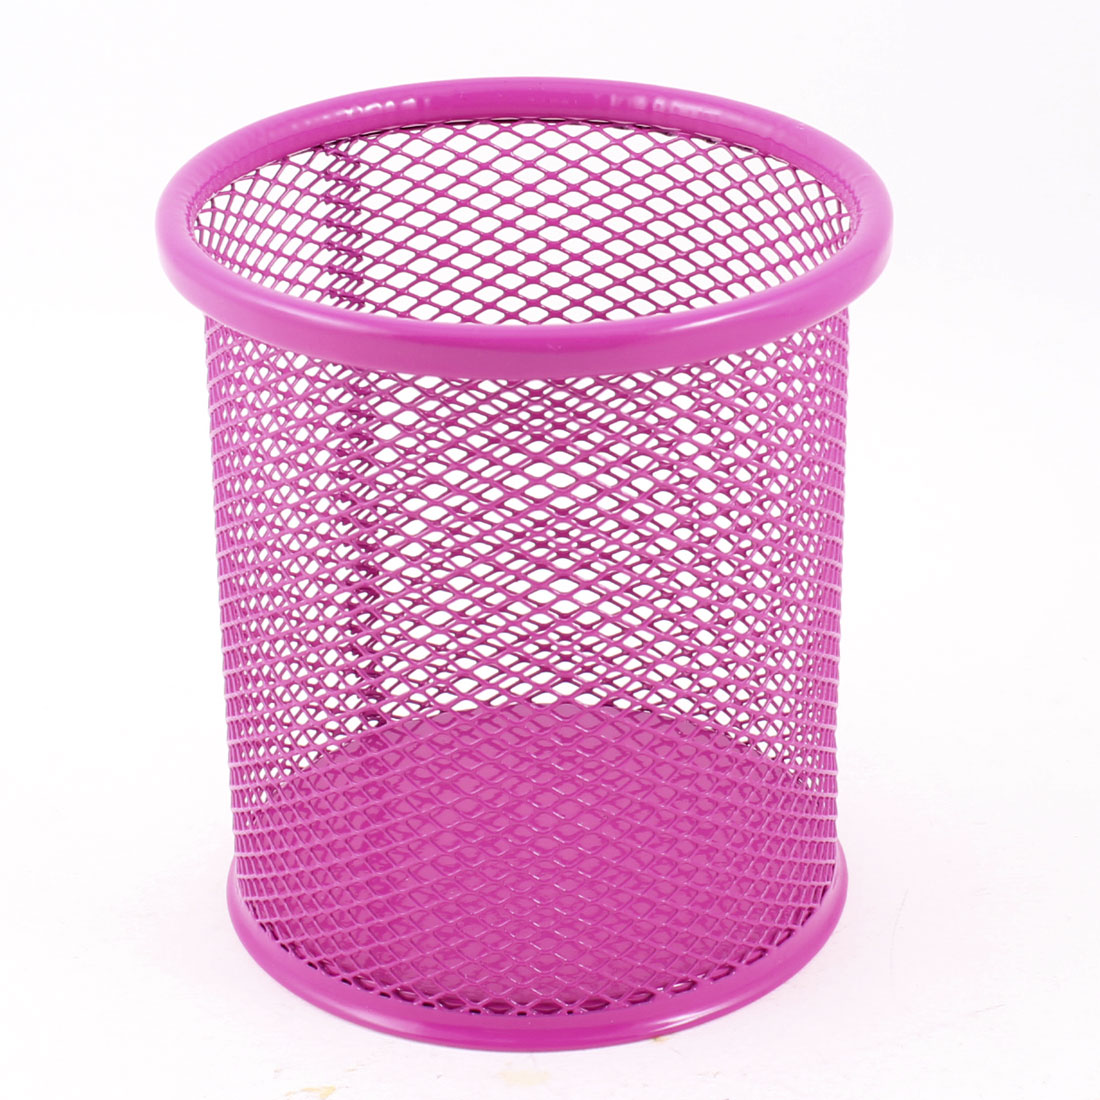 Office Metal Cylinder Style Mesh Pen Holder Ruler Organizer 9.8cm Height Fuchsia